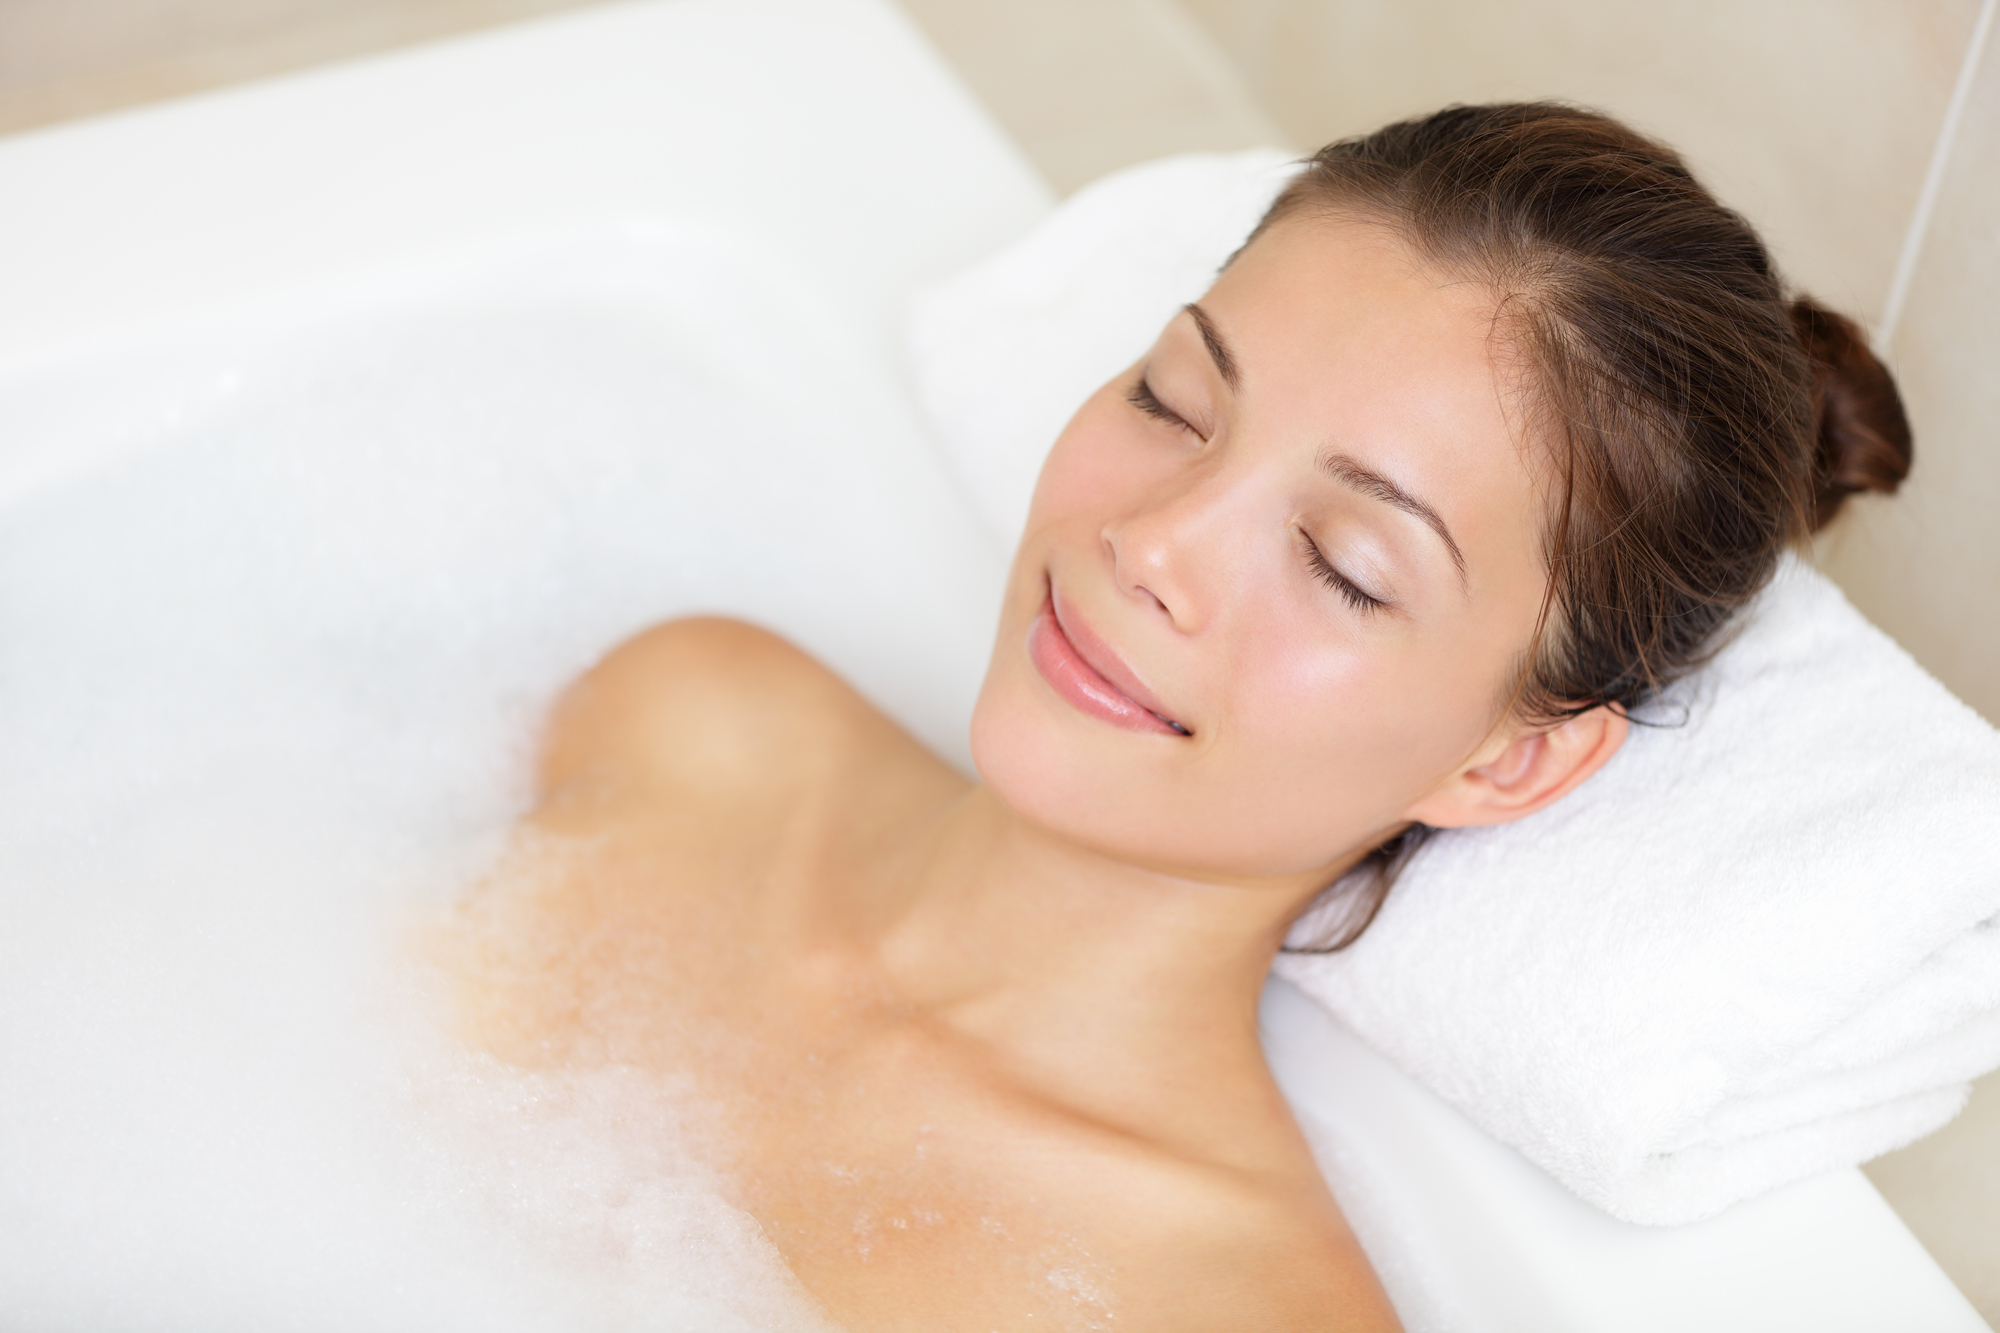 Bathing woman relaxing in bath smiling relaxing with eyes closed. Multicultural Asian / Caucasian young woman in bathtub.